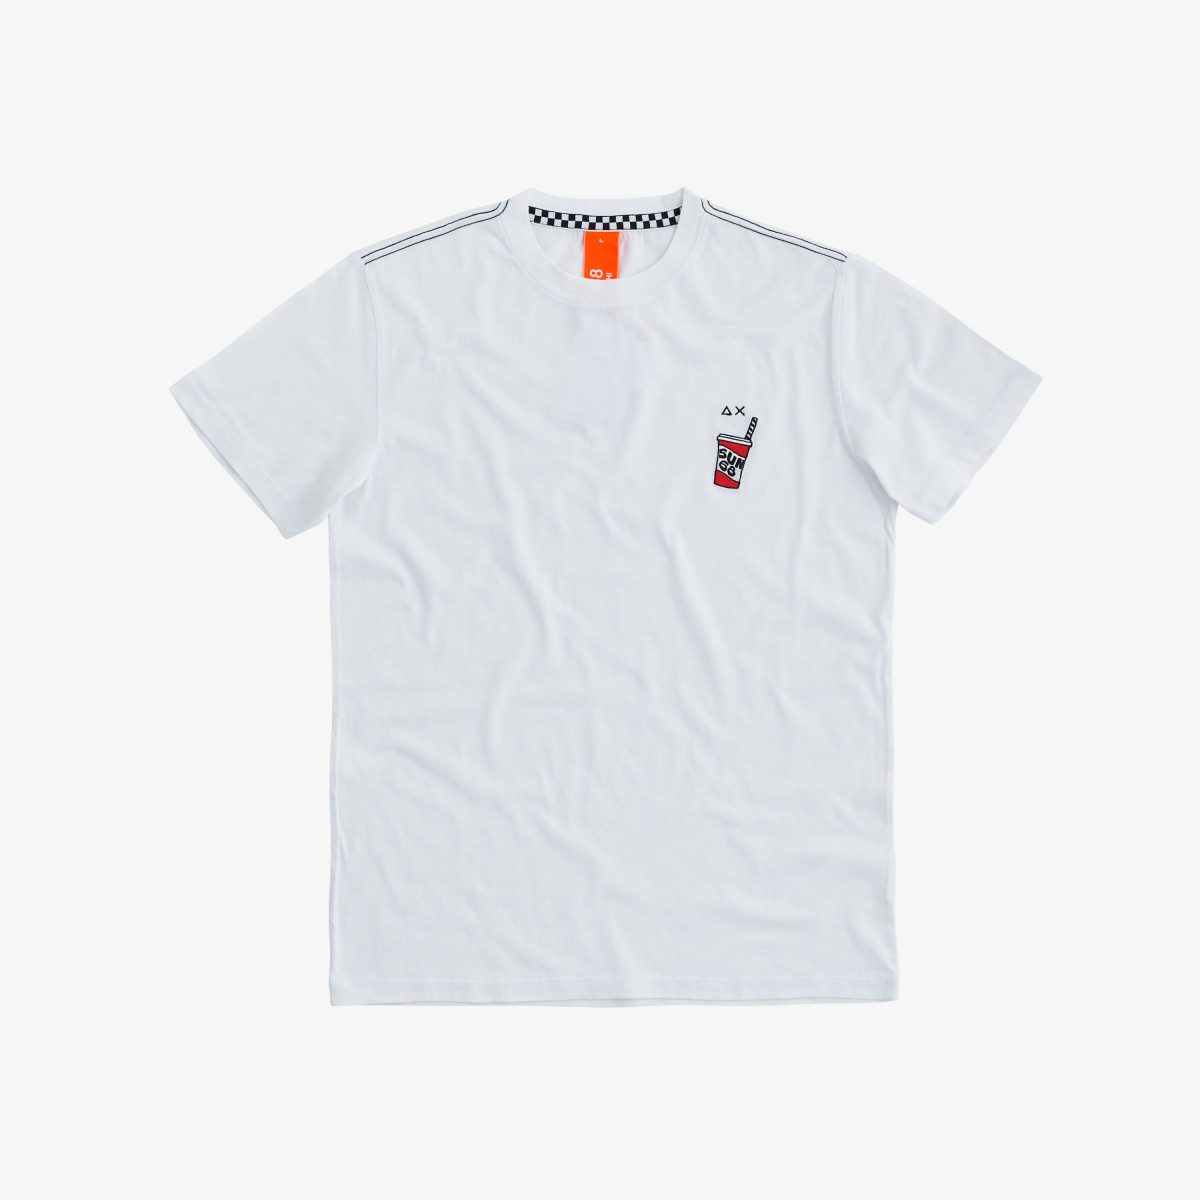 ROUND T-SHIRT WITH PATCH S/S WHITE